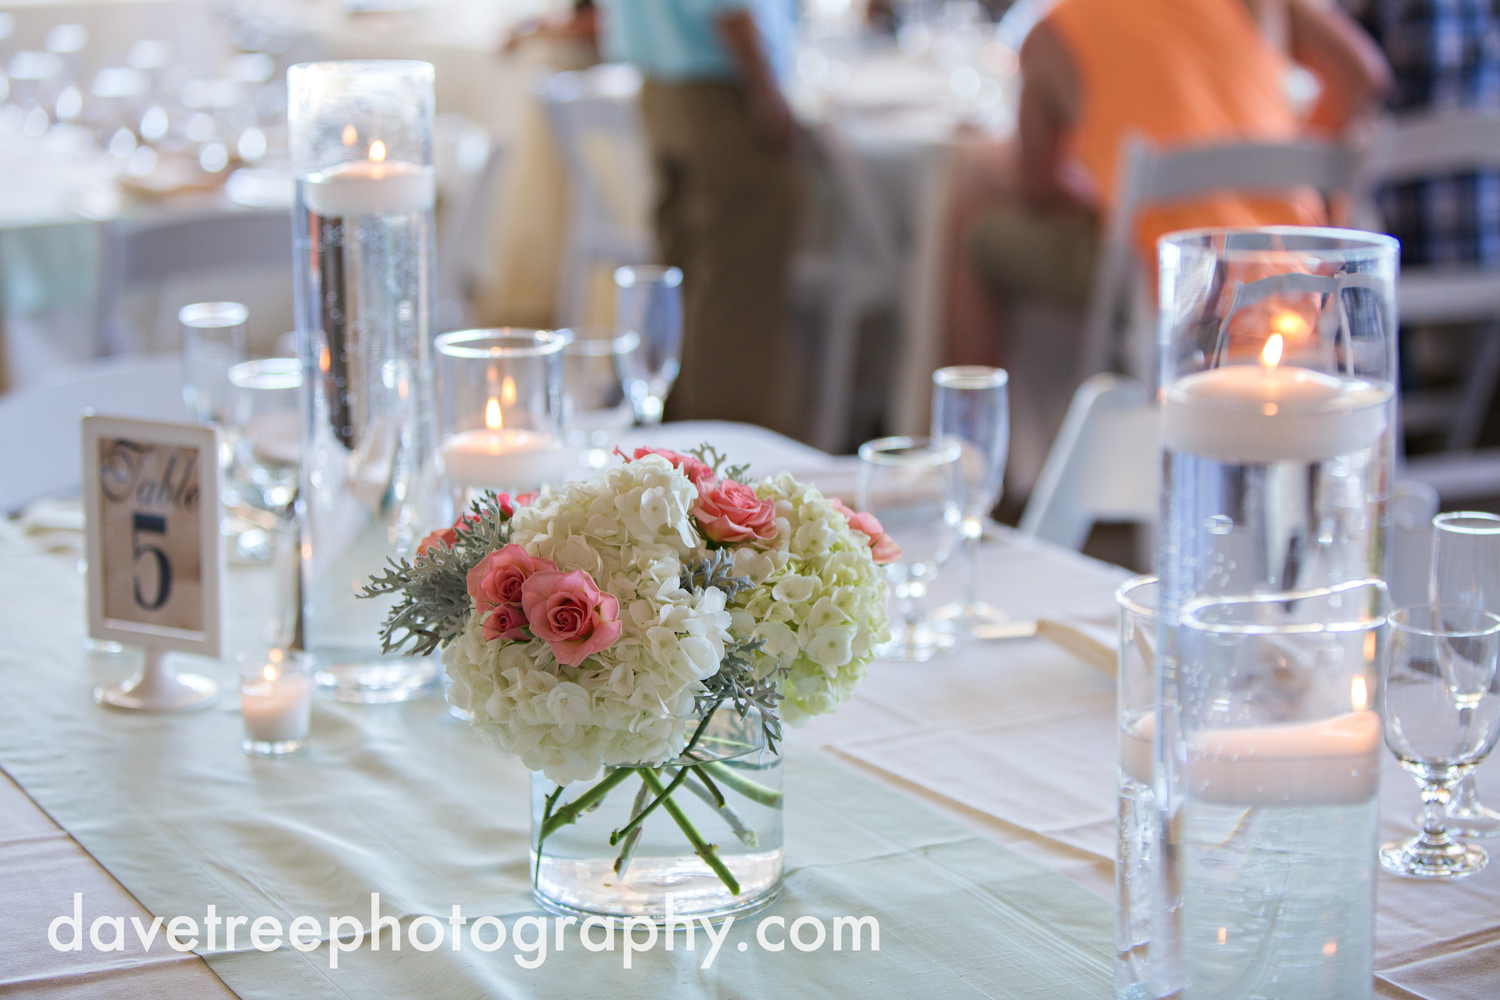 veranda_wedding_photographer_st_joseph_wedding_86.jpg